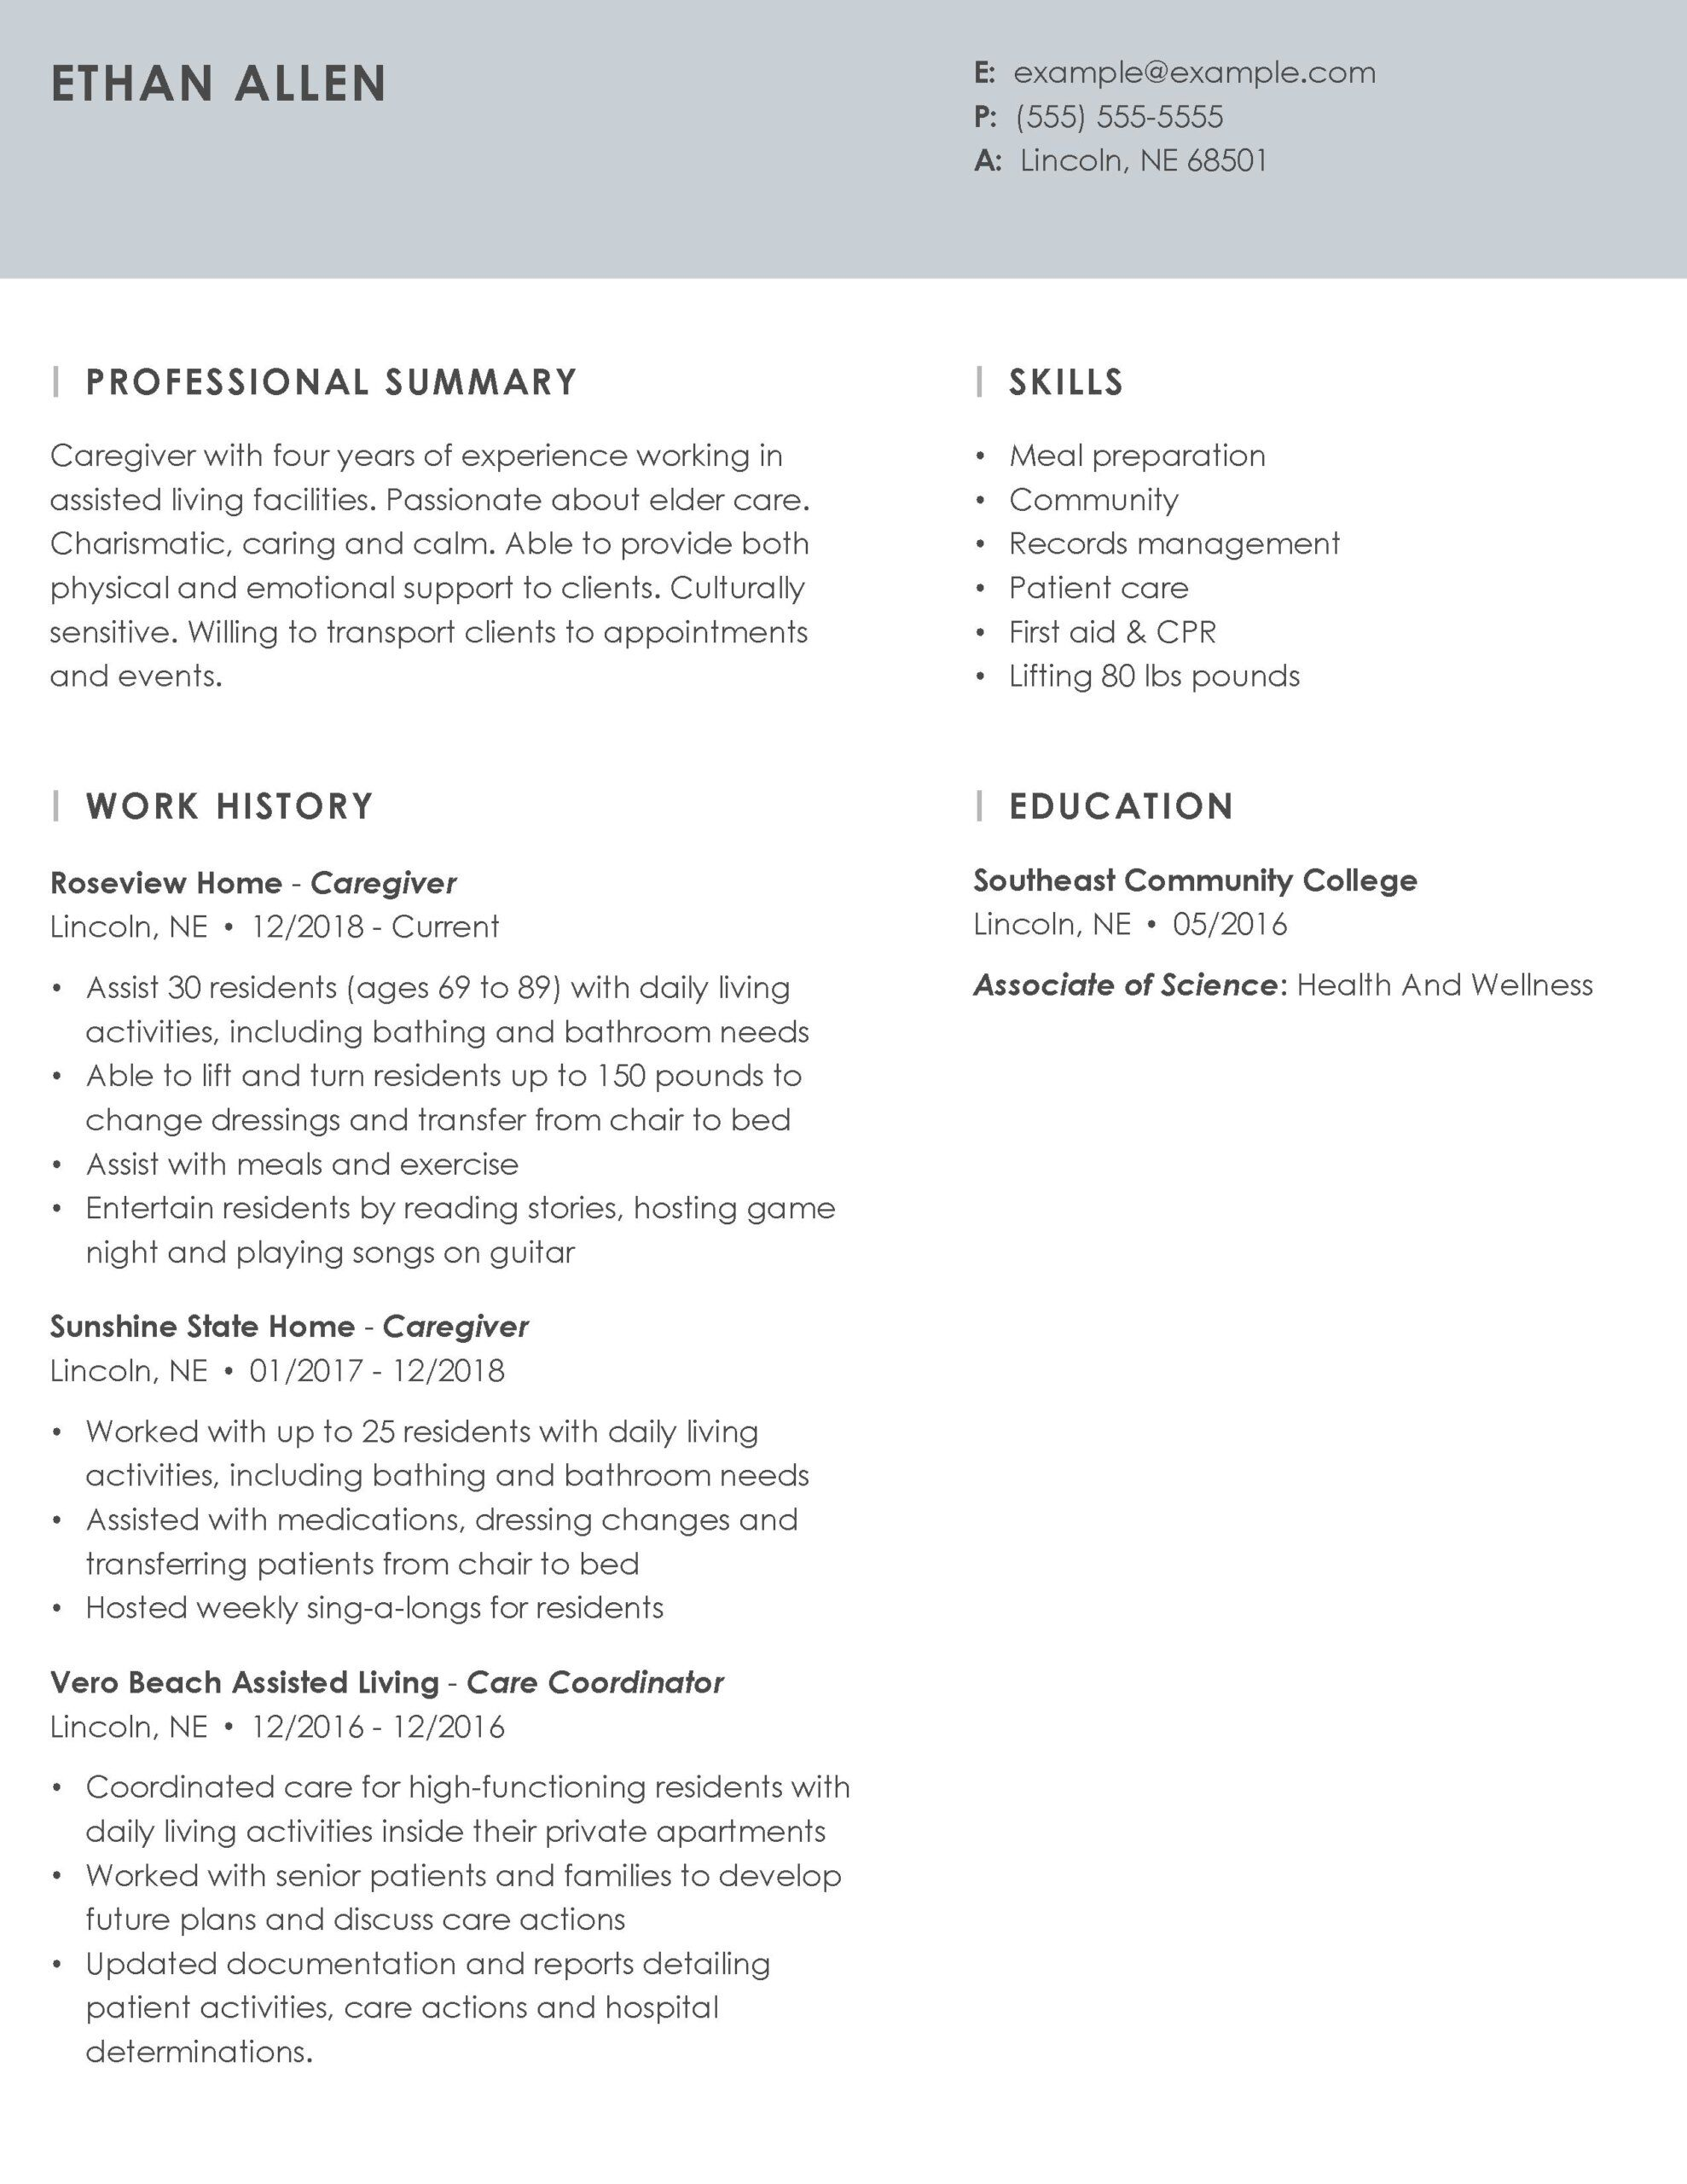 professional caregiver resume example tips myperfectresume caretaker skills essence Resume Caretaker Skills Resume